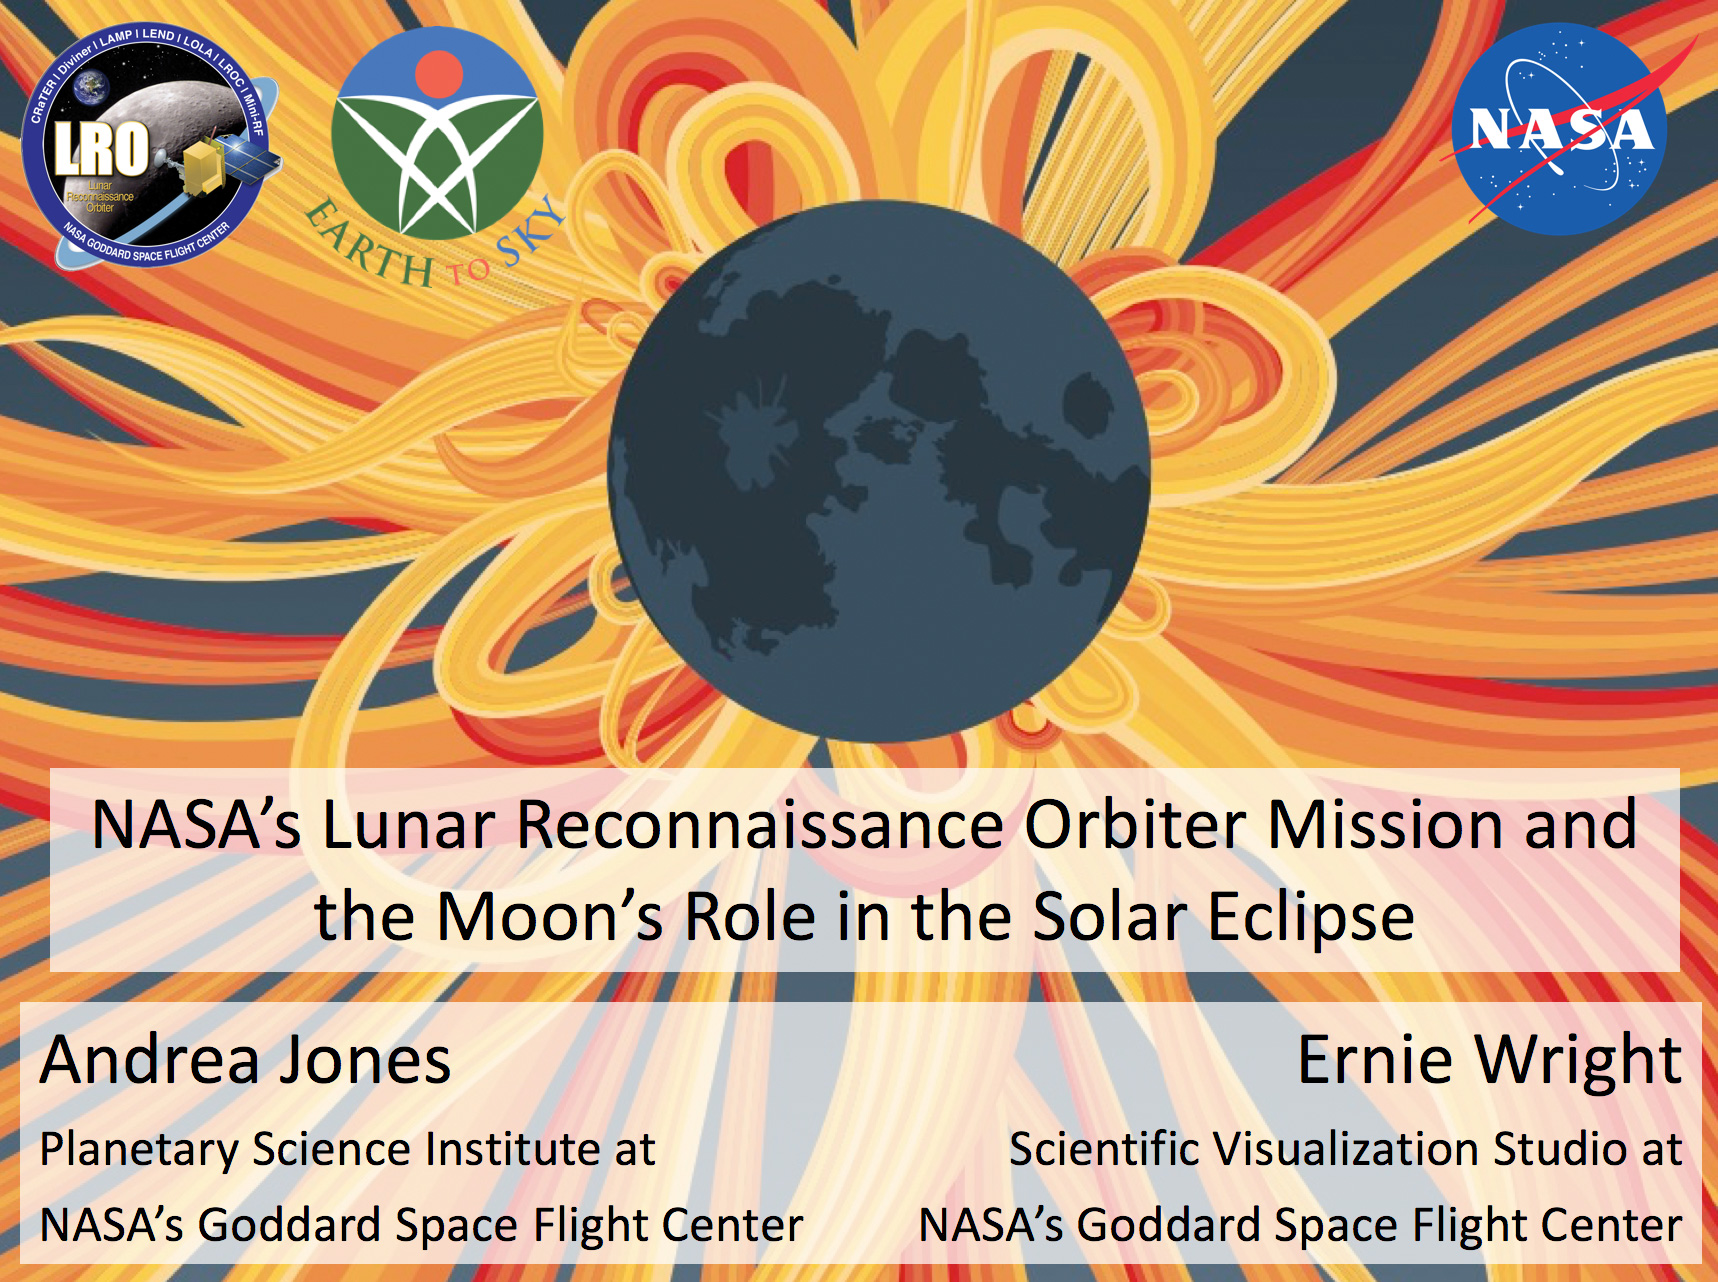 NASA's Lunar Reconnaissance Orbiter Mission and the Moon's Role in the Solar Eclipse